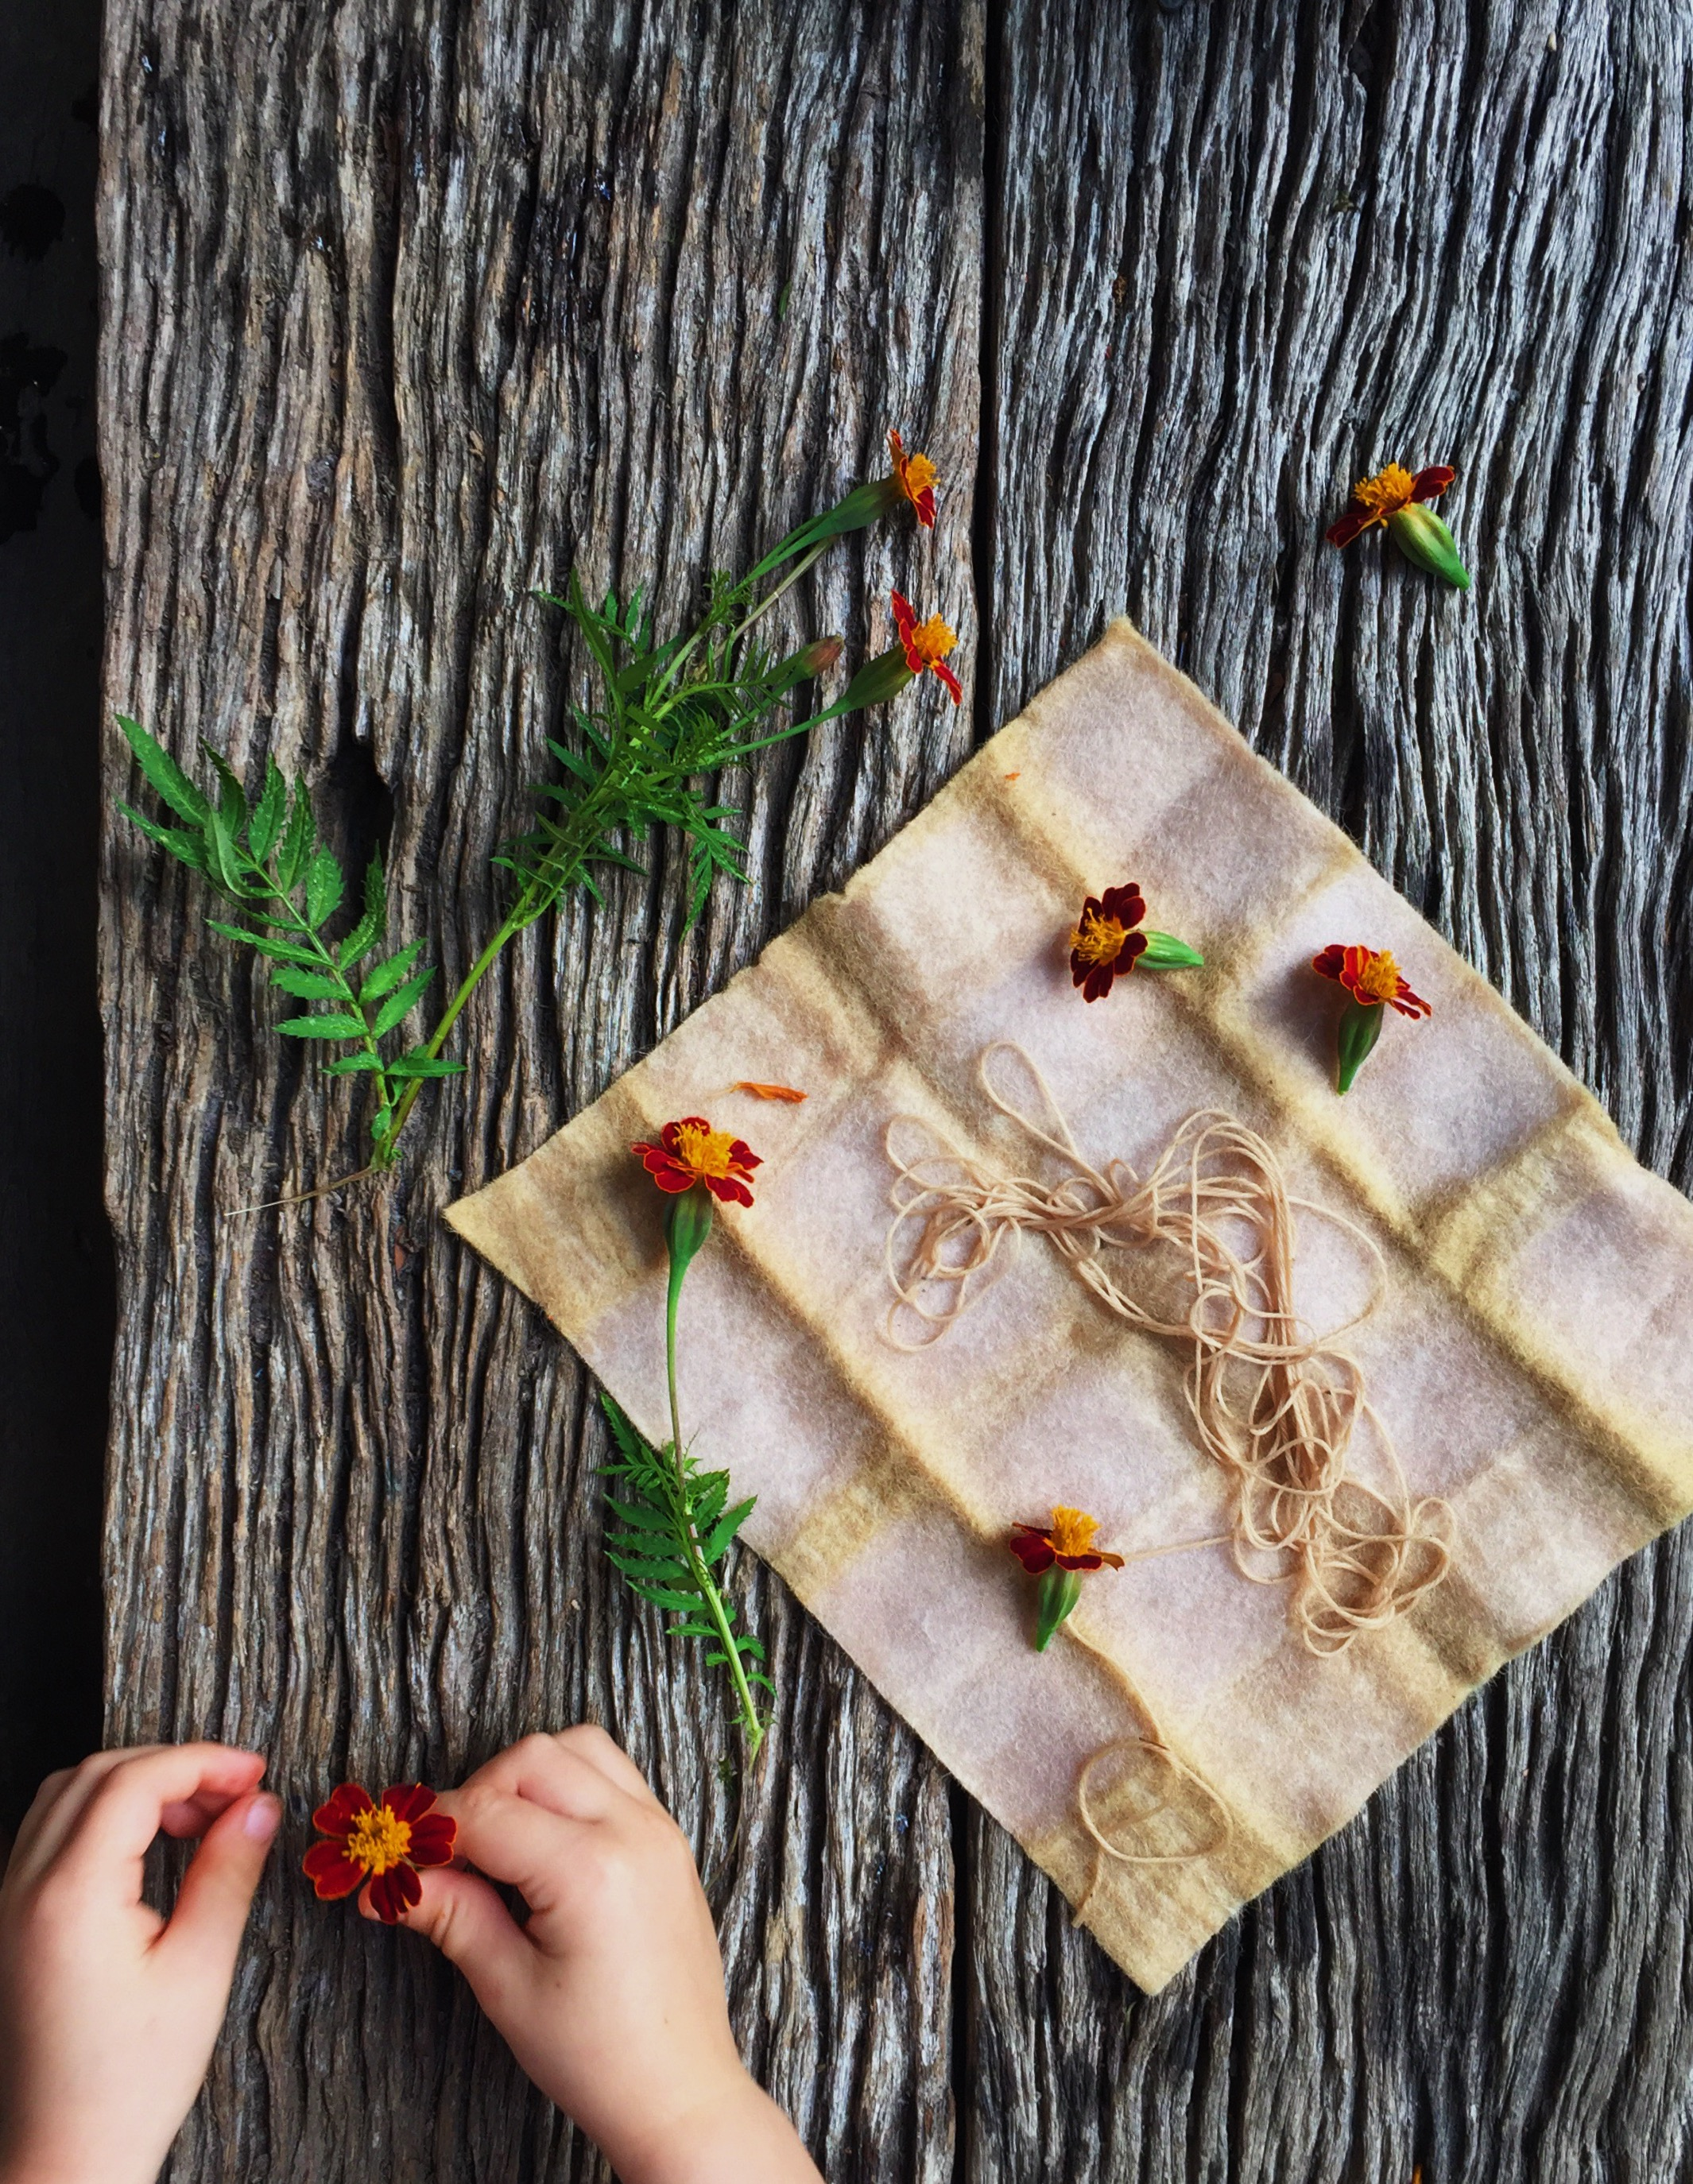 Ellie Beck Petalplum Naturally dyed fabric - dyeing with marigolds